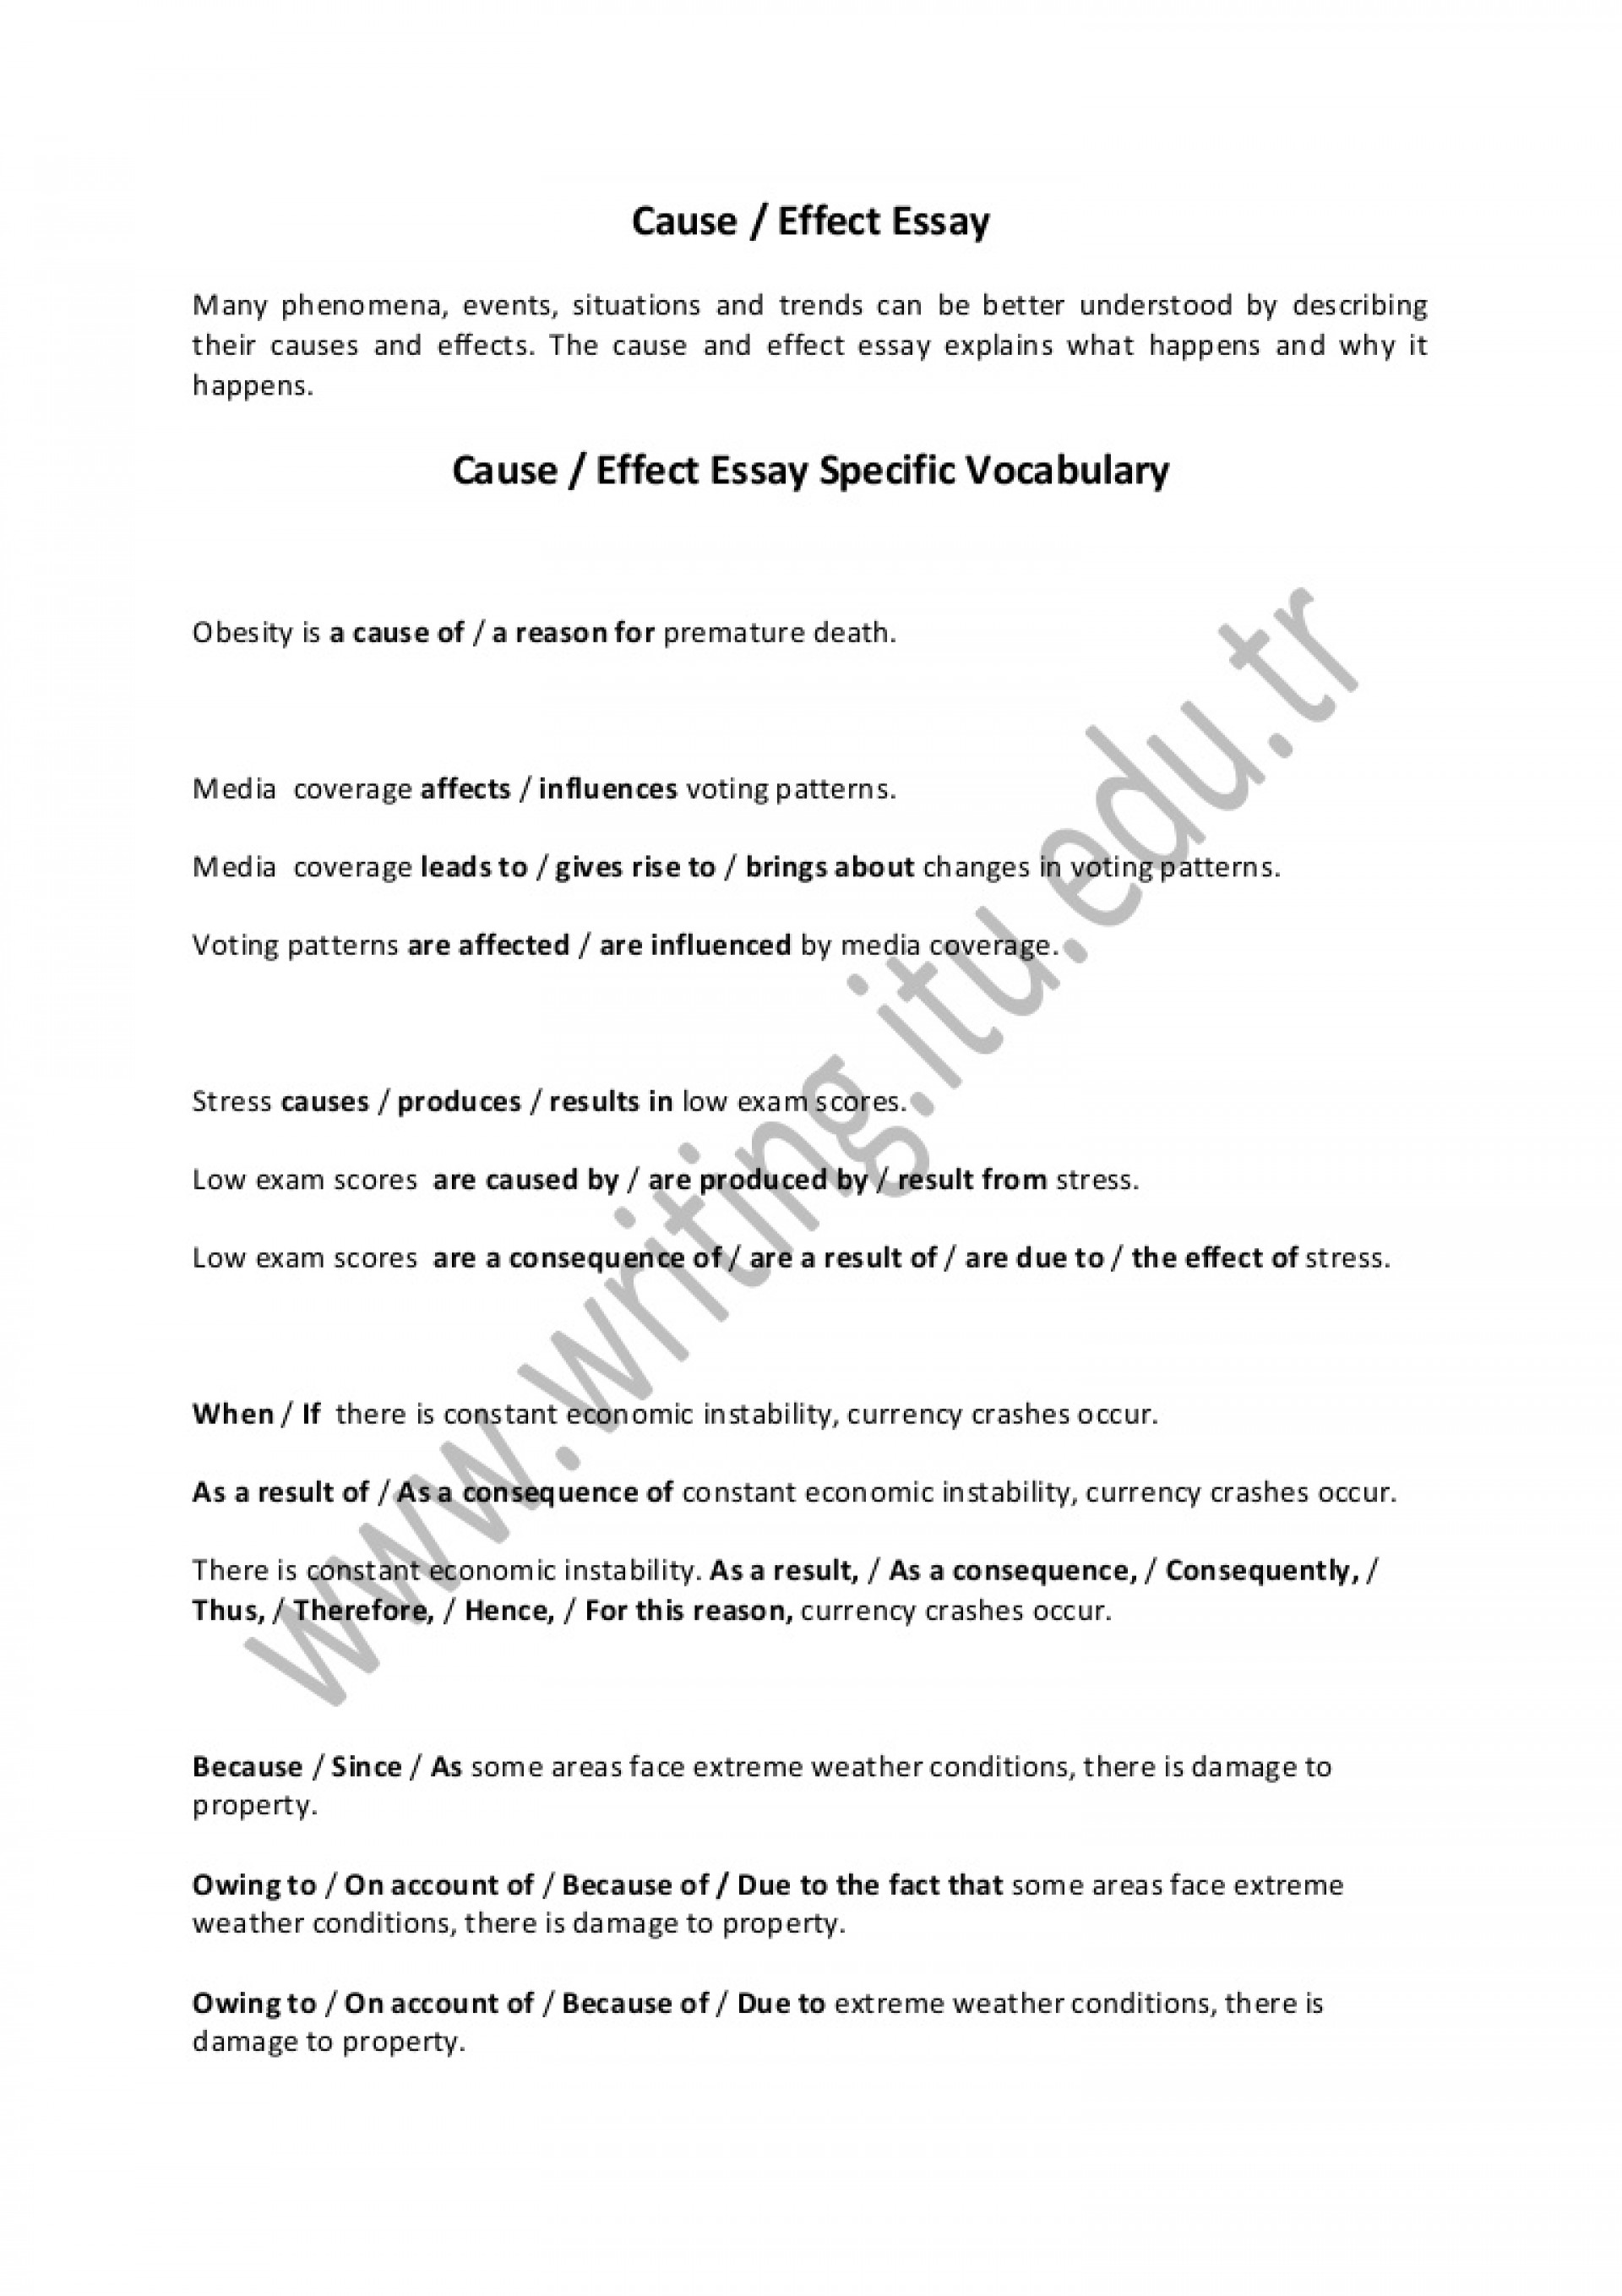 019 Essay Example Causeandeffectessay Thumbnail Cause And Effect Amazing Examples Writing Pdf On Stress 1920